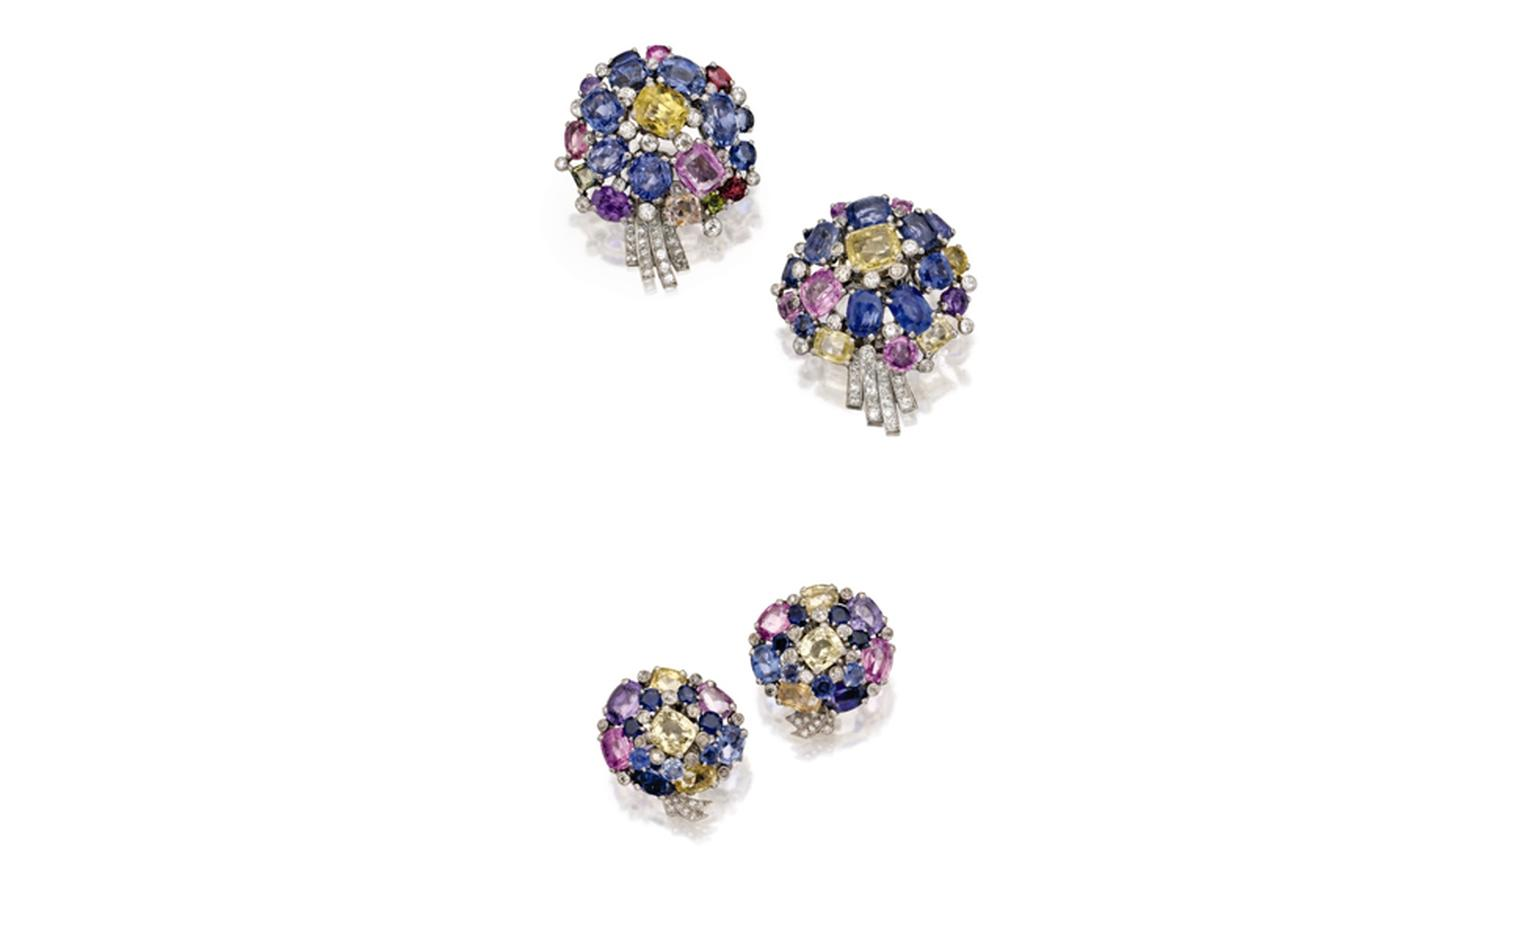 Lot 369 Pair of Platinum, Multi-colored Sapphire and Diamond Flower Clip-Brooches, Cartier, London, Circa 1940 Est. $20/30,000 and Lot 370 Pair of Platinum, Multi-colored Sapphire and Diamond Flower Earclips, Cartier, London, Circa 1940 Est. $12...